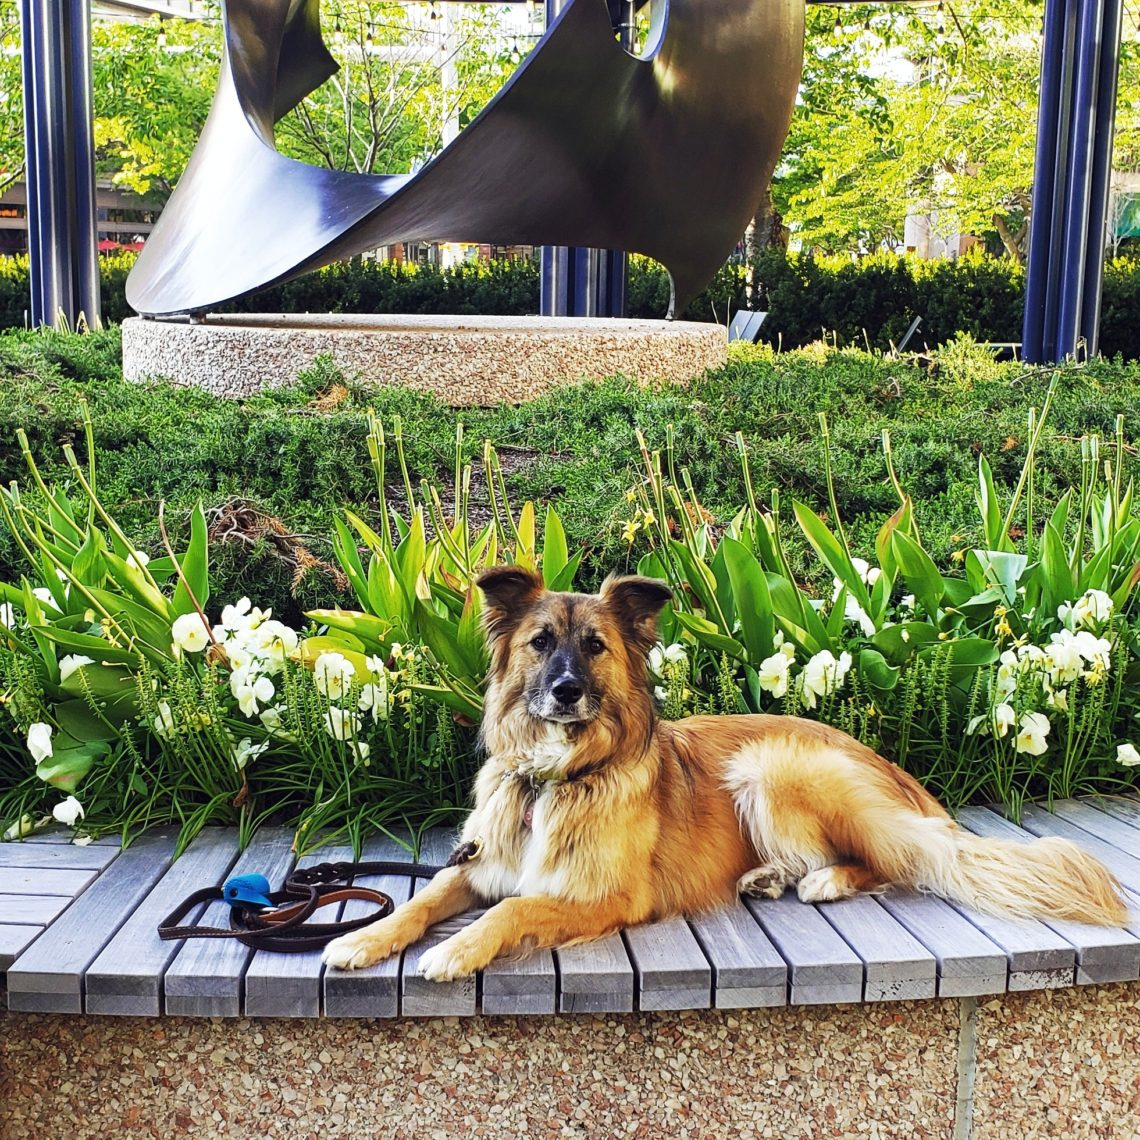 Dog laying in front of flowers and sculpture.